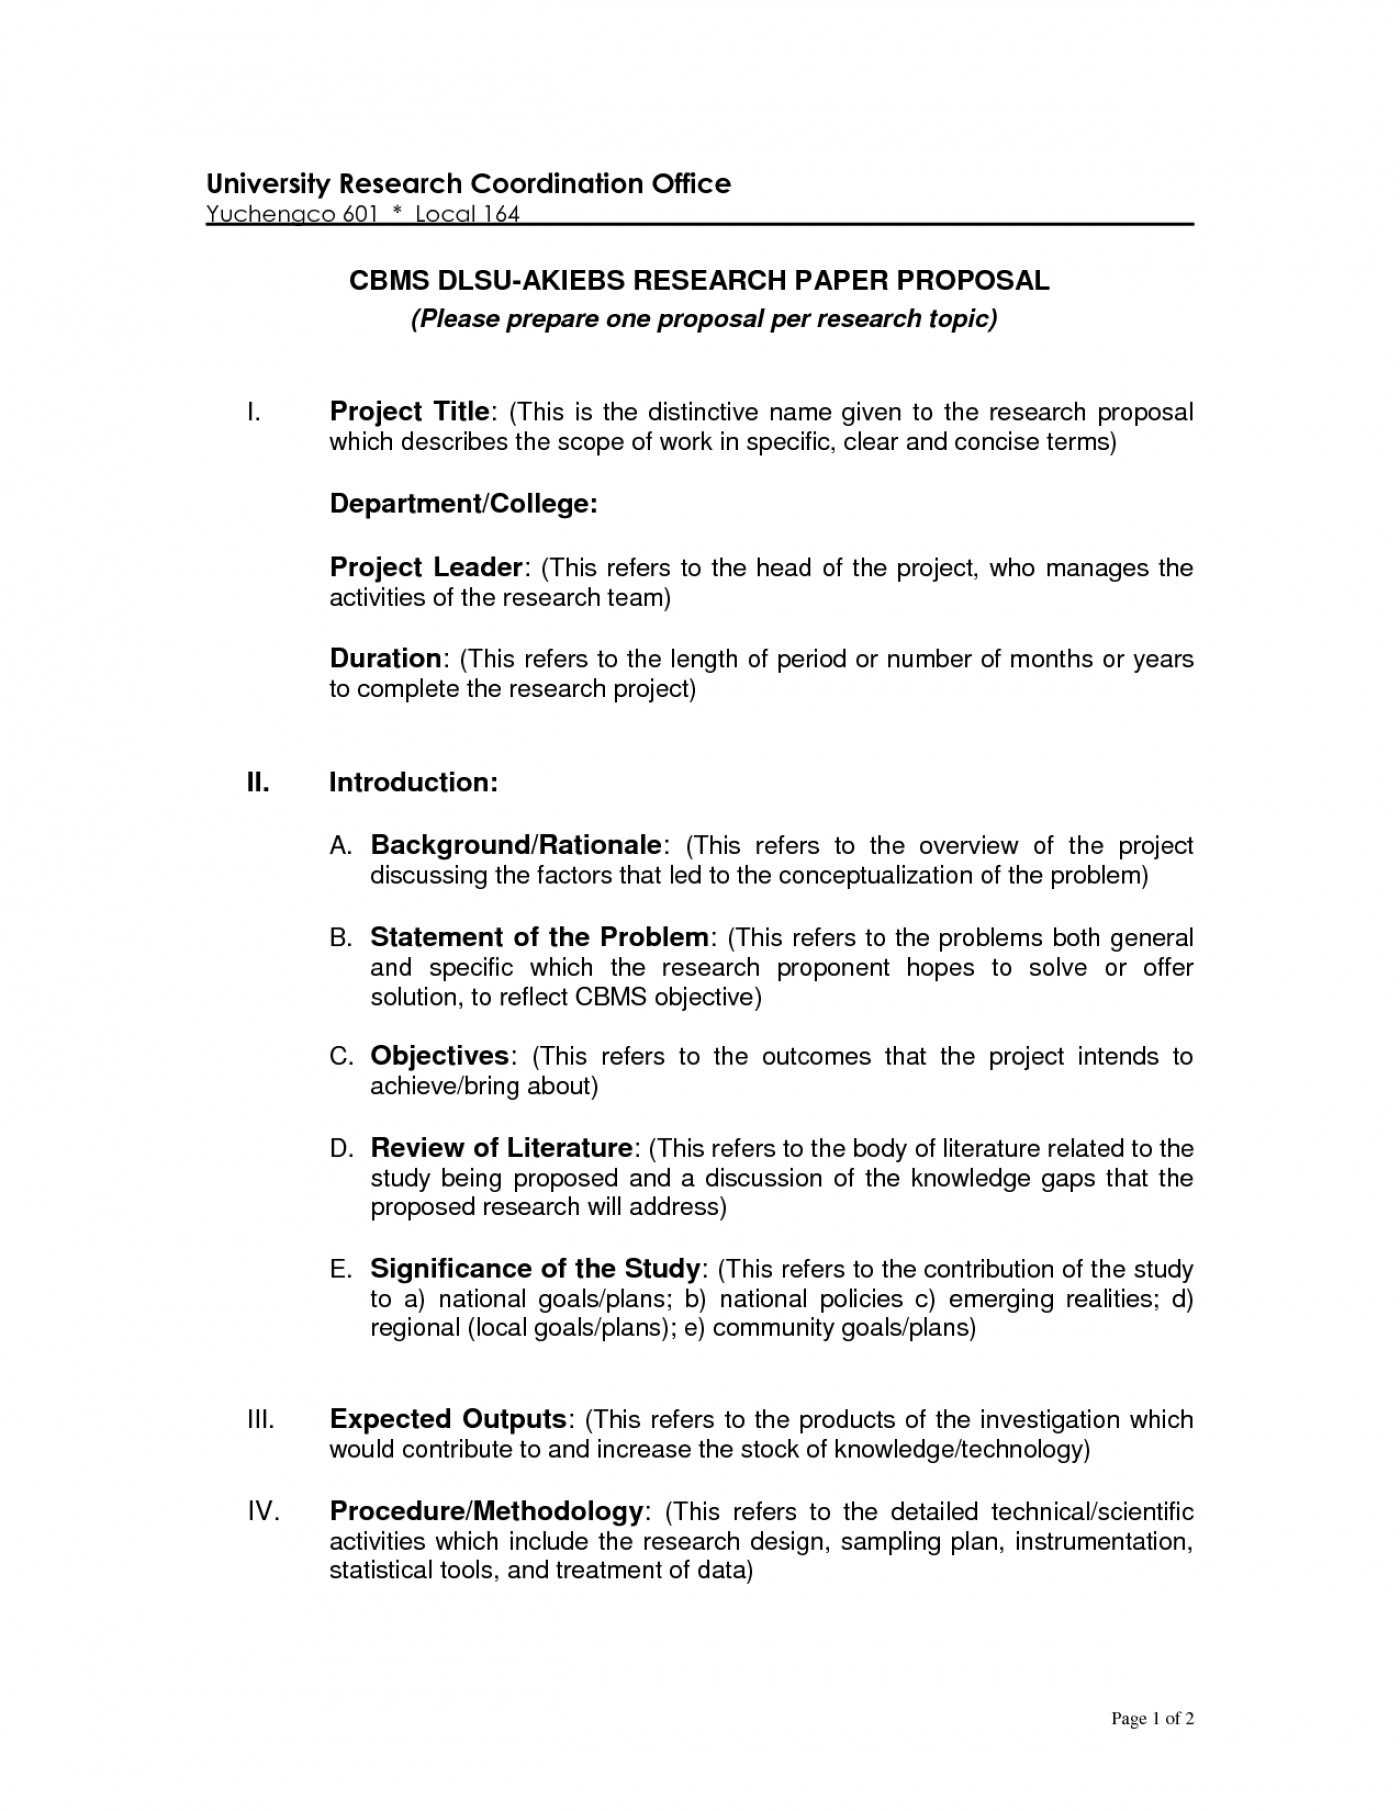 015 Ideas Of Phd Research Proposal Format Example Essay Sample Paper Appendix Mla Astounding Topic Education Psychology Business 1400